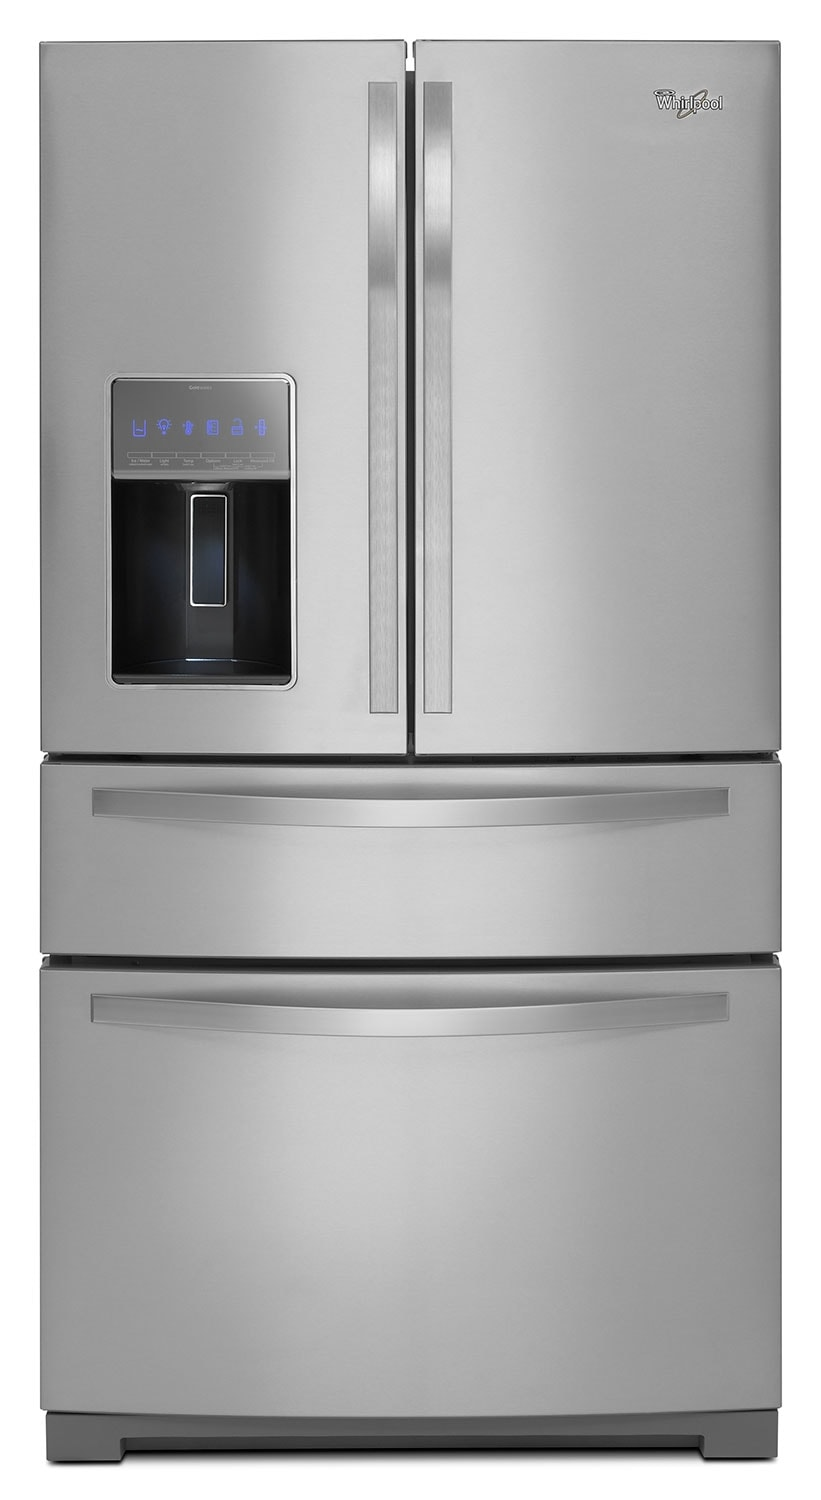 Refrigerators and Freezers - Whirlpool Stainless Steel French Door Refrigerator (26.2 Cu. Ft.) - WRX988SIBM